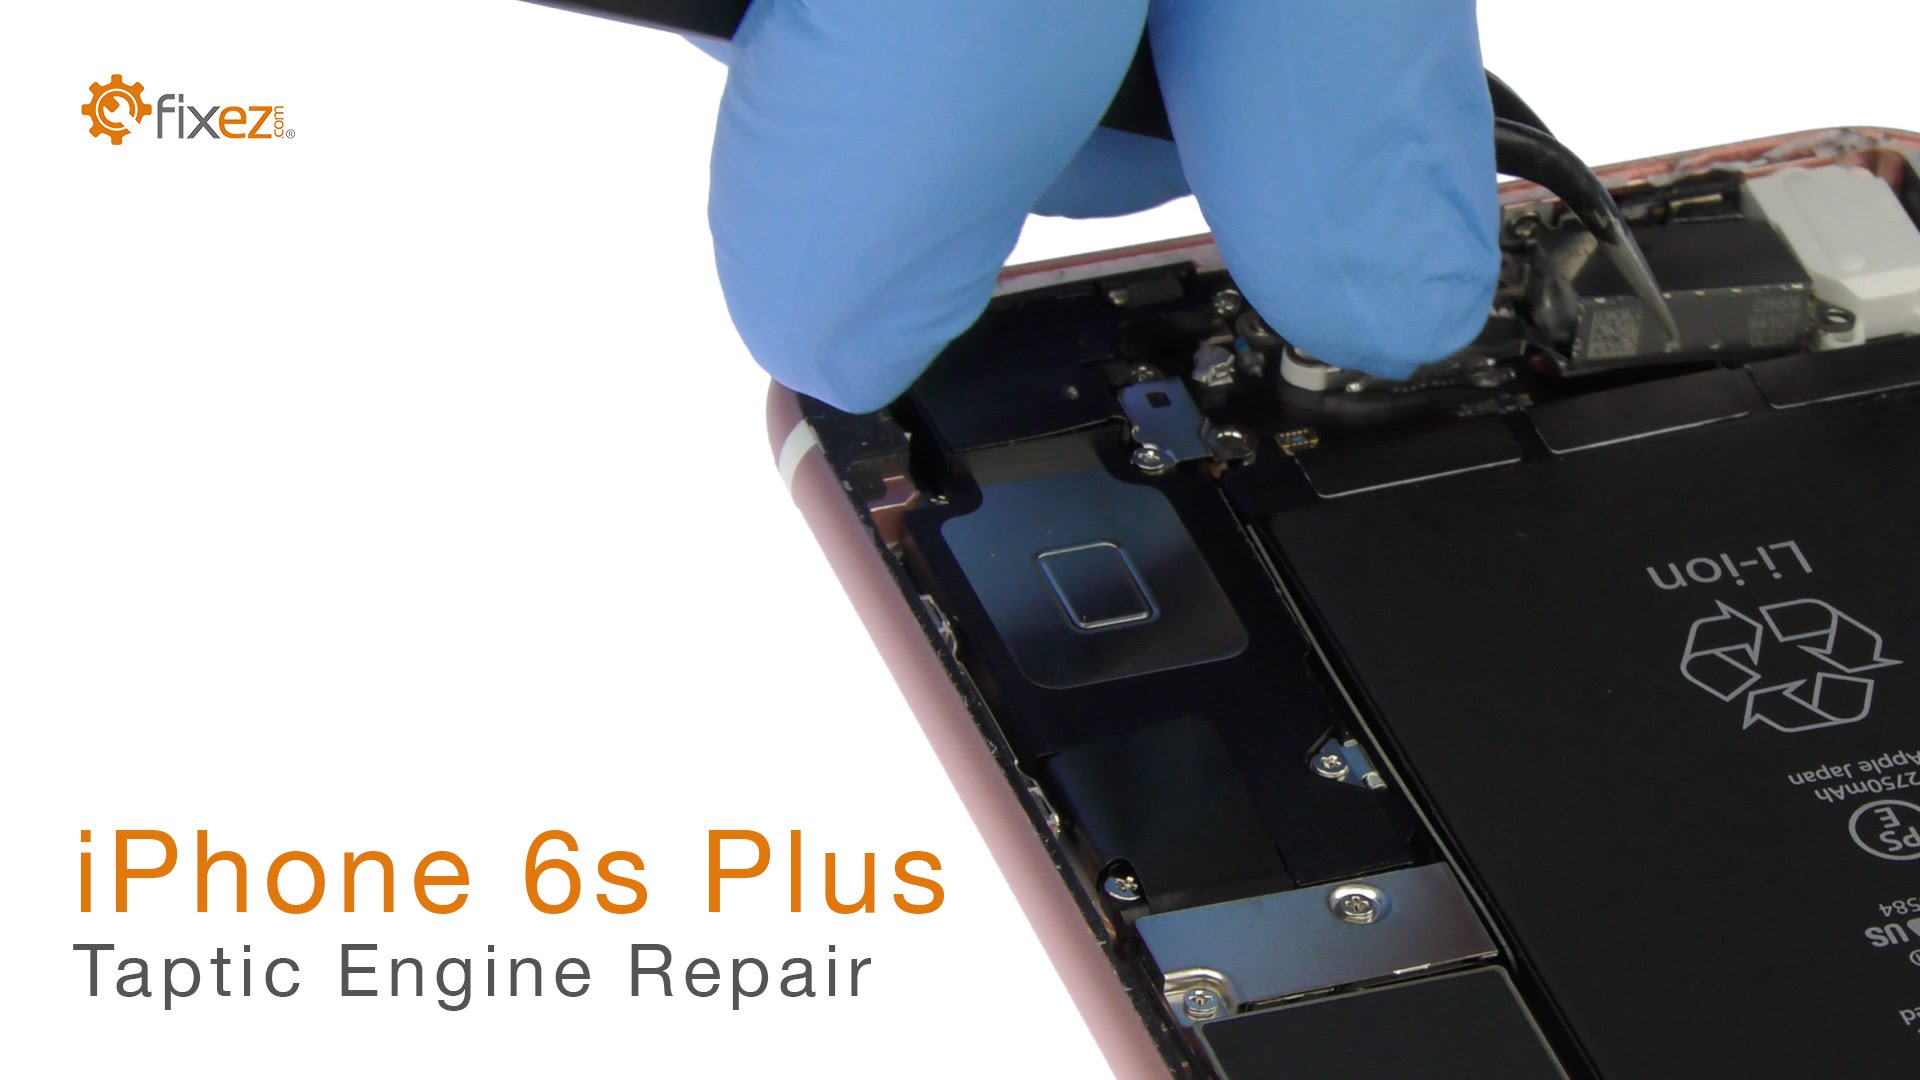 iPhone 6s Plus Taptic Engine交換修理方法動画